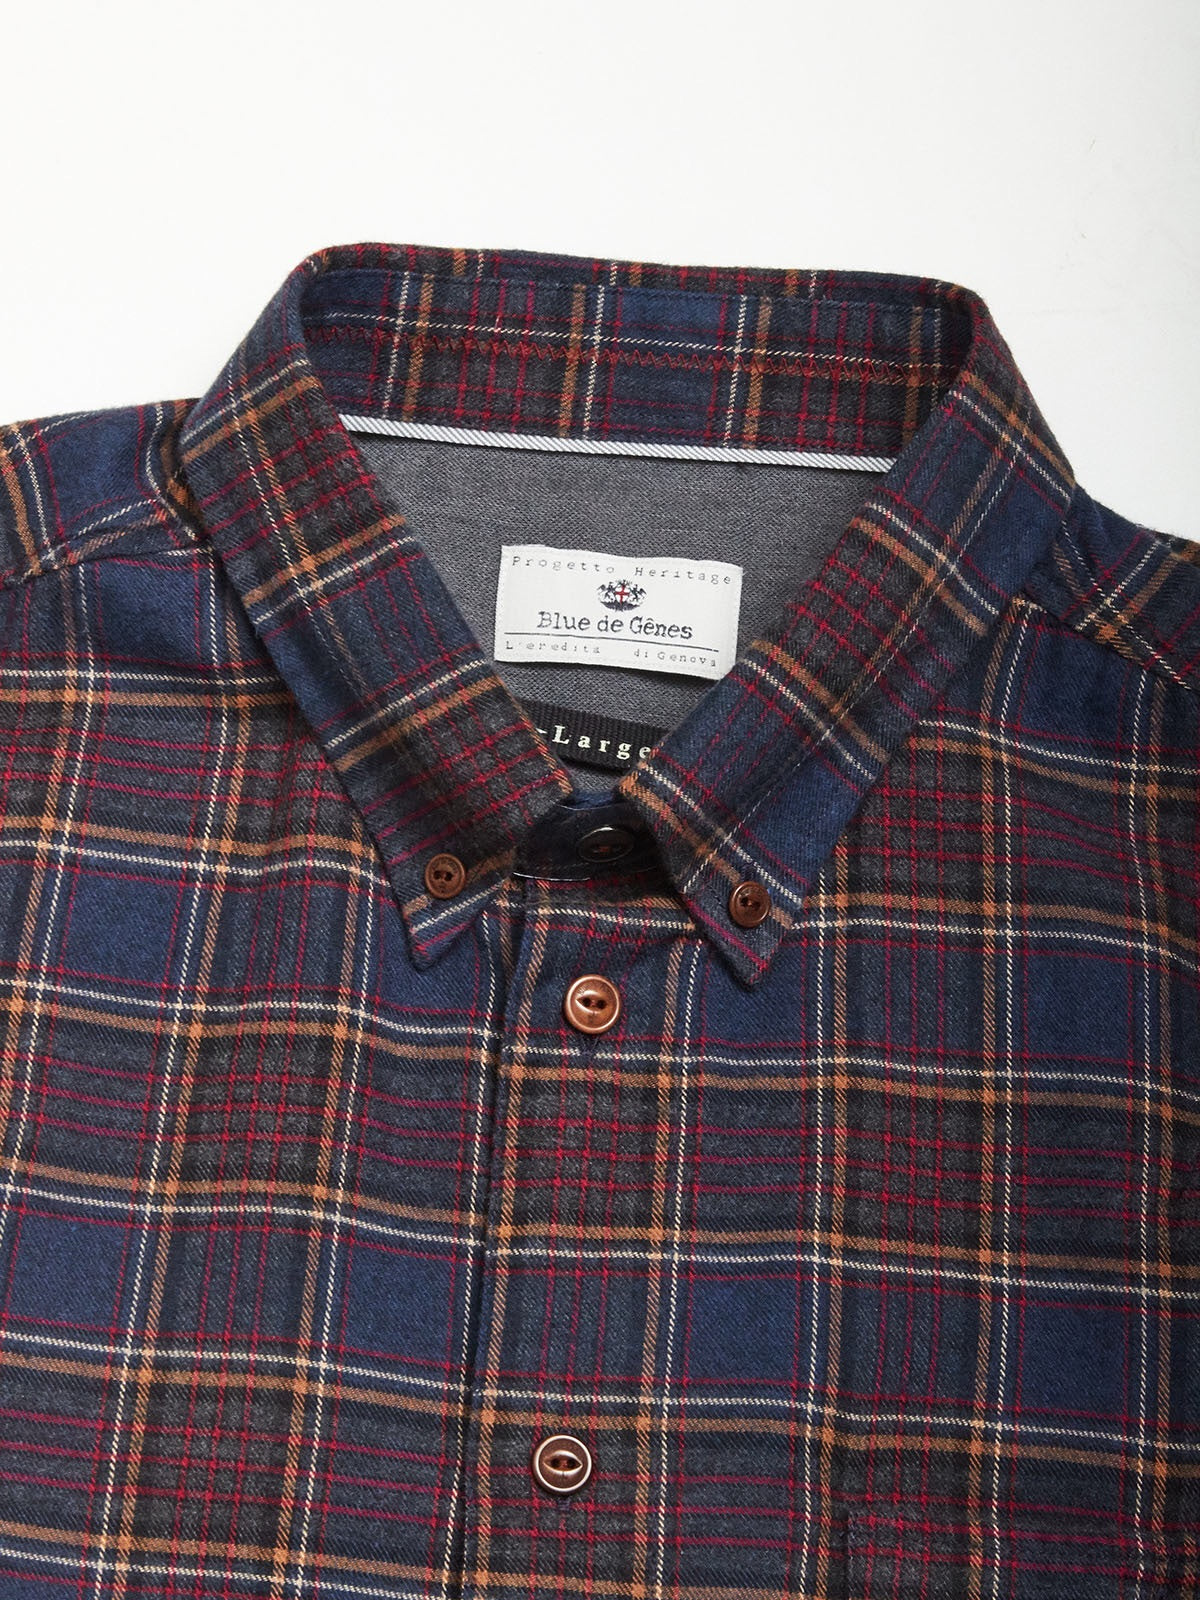 Blue de Genes Navy Check Polar Albiate Shirt